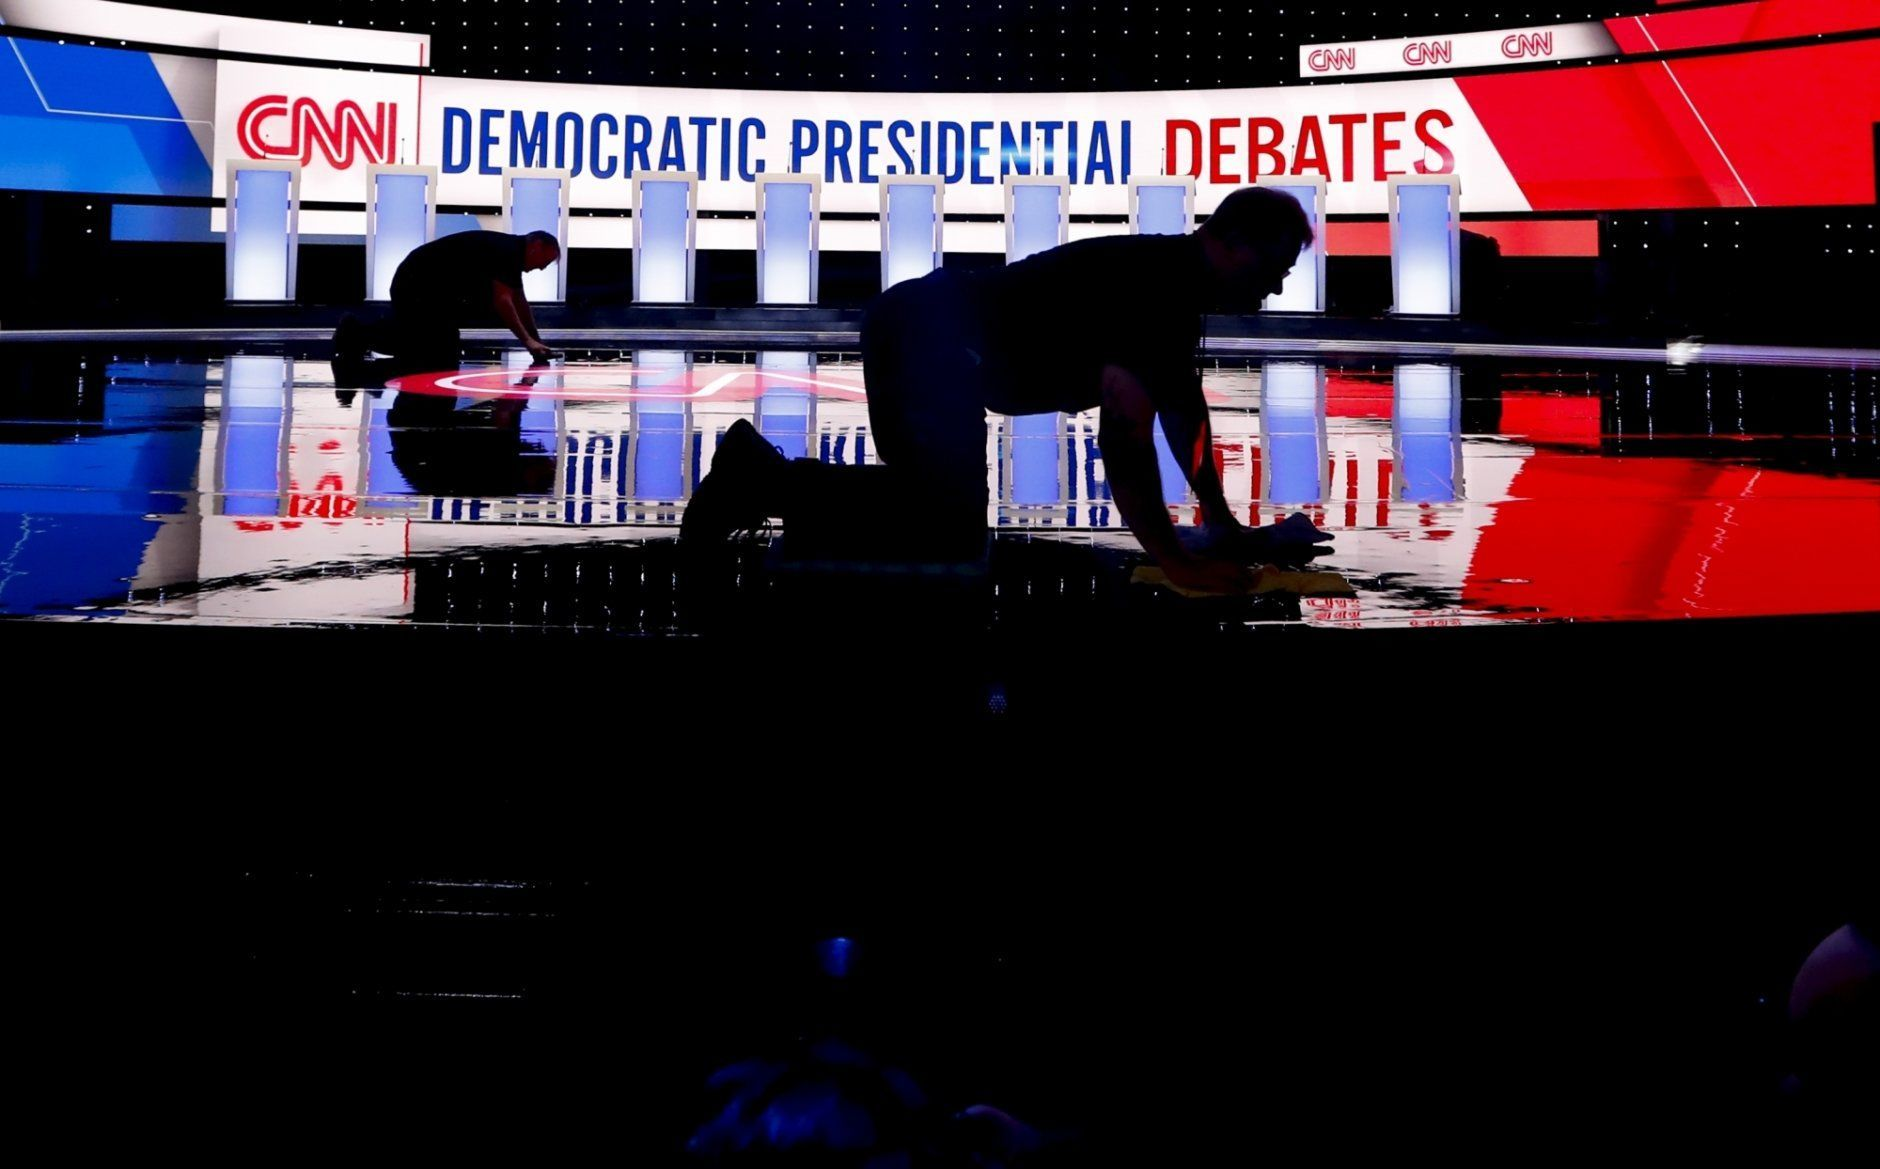 Workers get the stage ready for the Democratic primary debate hosted by CNN Tuesday, July 30, 2019, at the Fox Theatre in Detroit. (AP Photo/Paul Sancya)